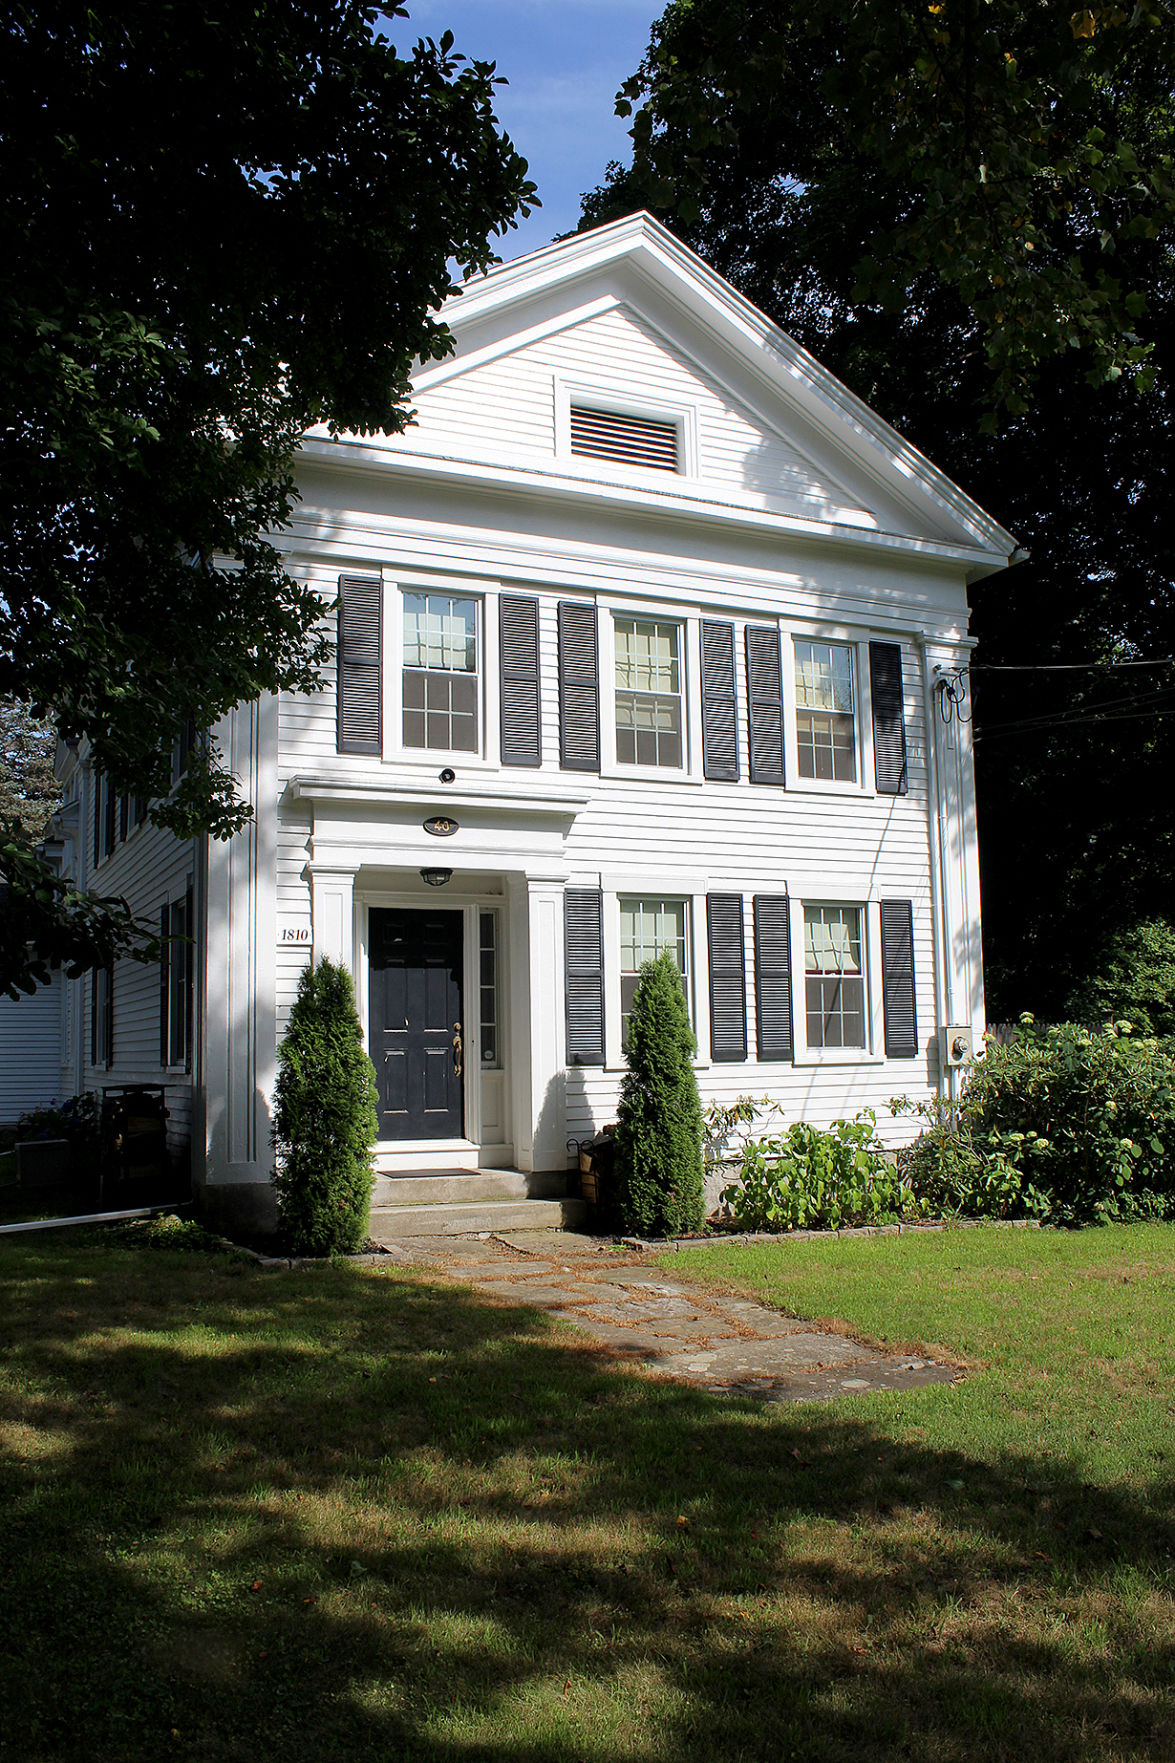 Six Homes to Be Open to Visitors: Torrington House Tour to Aid Educational Programs